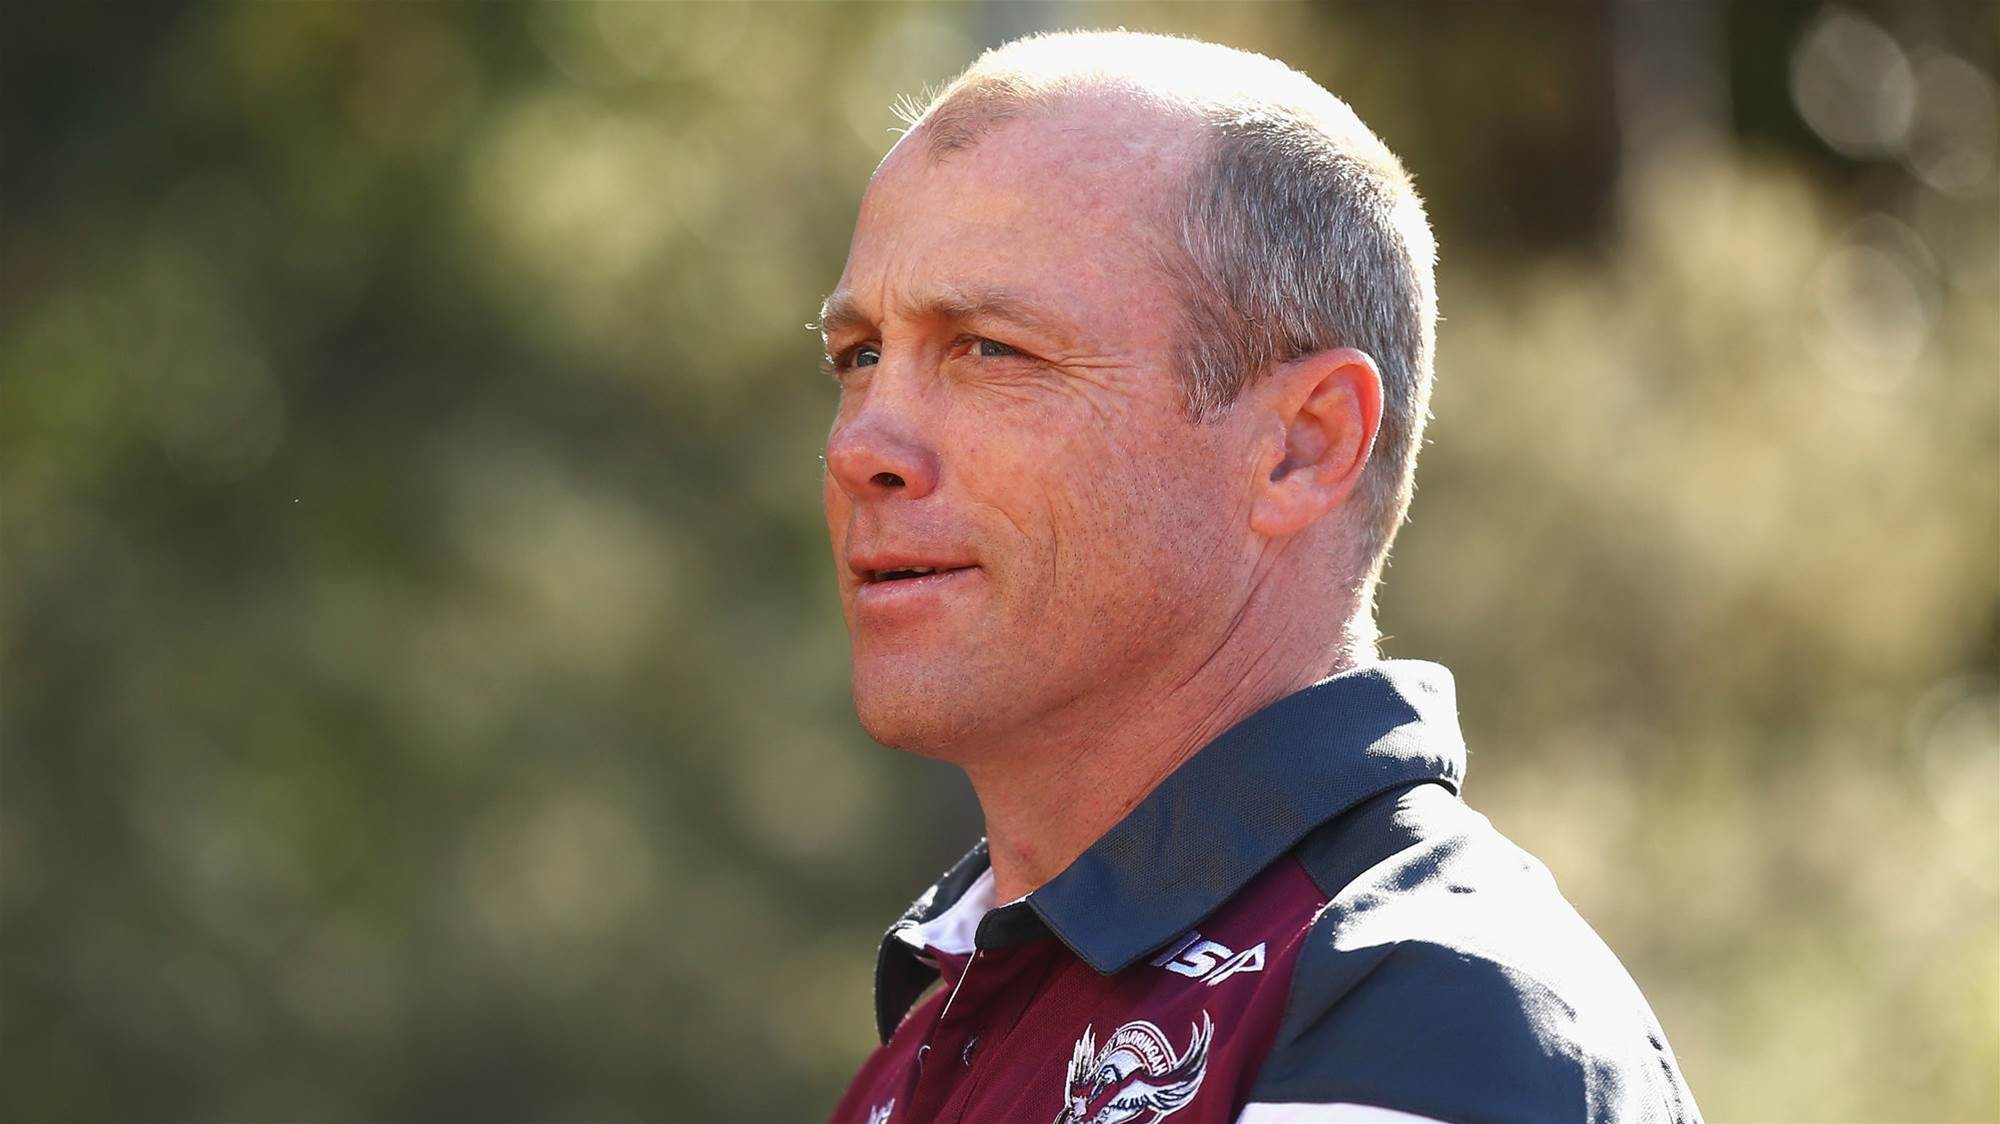 Guess what Toovey's doing for a crust?